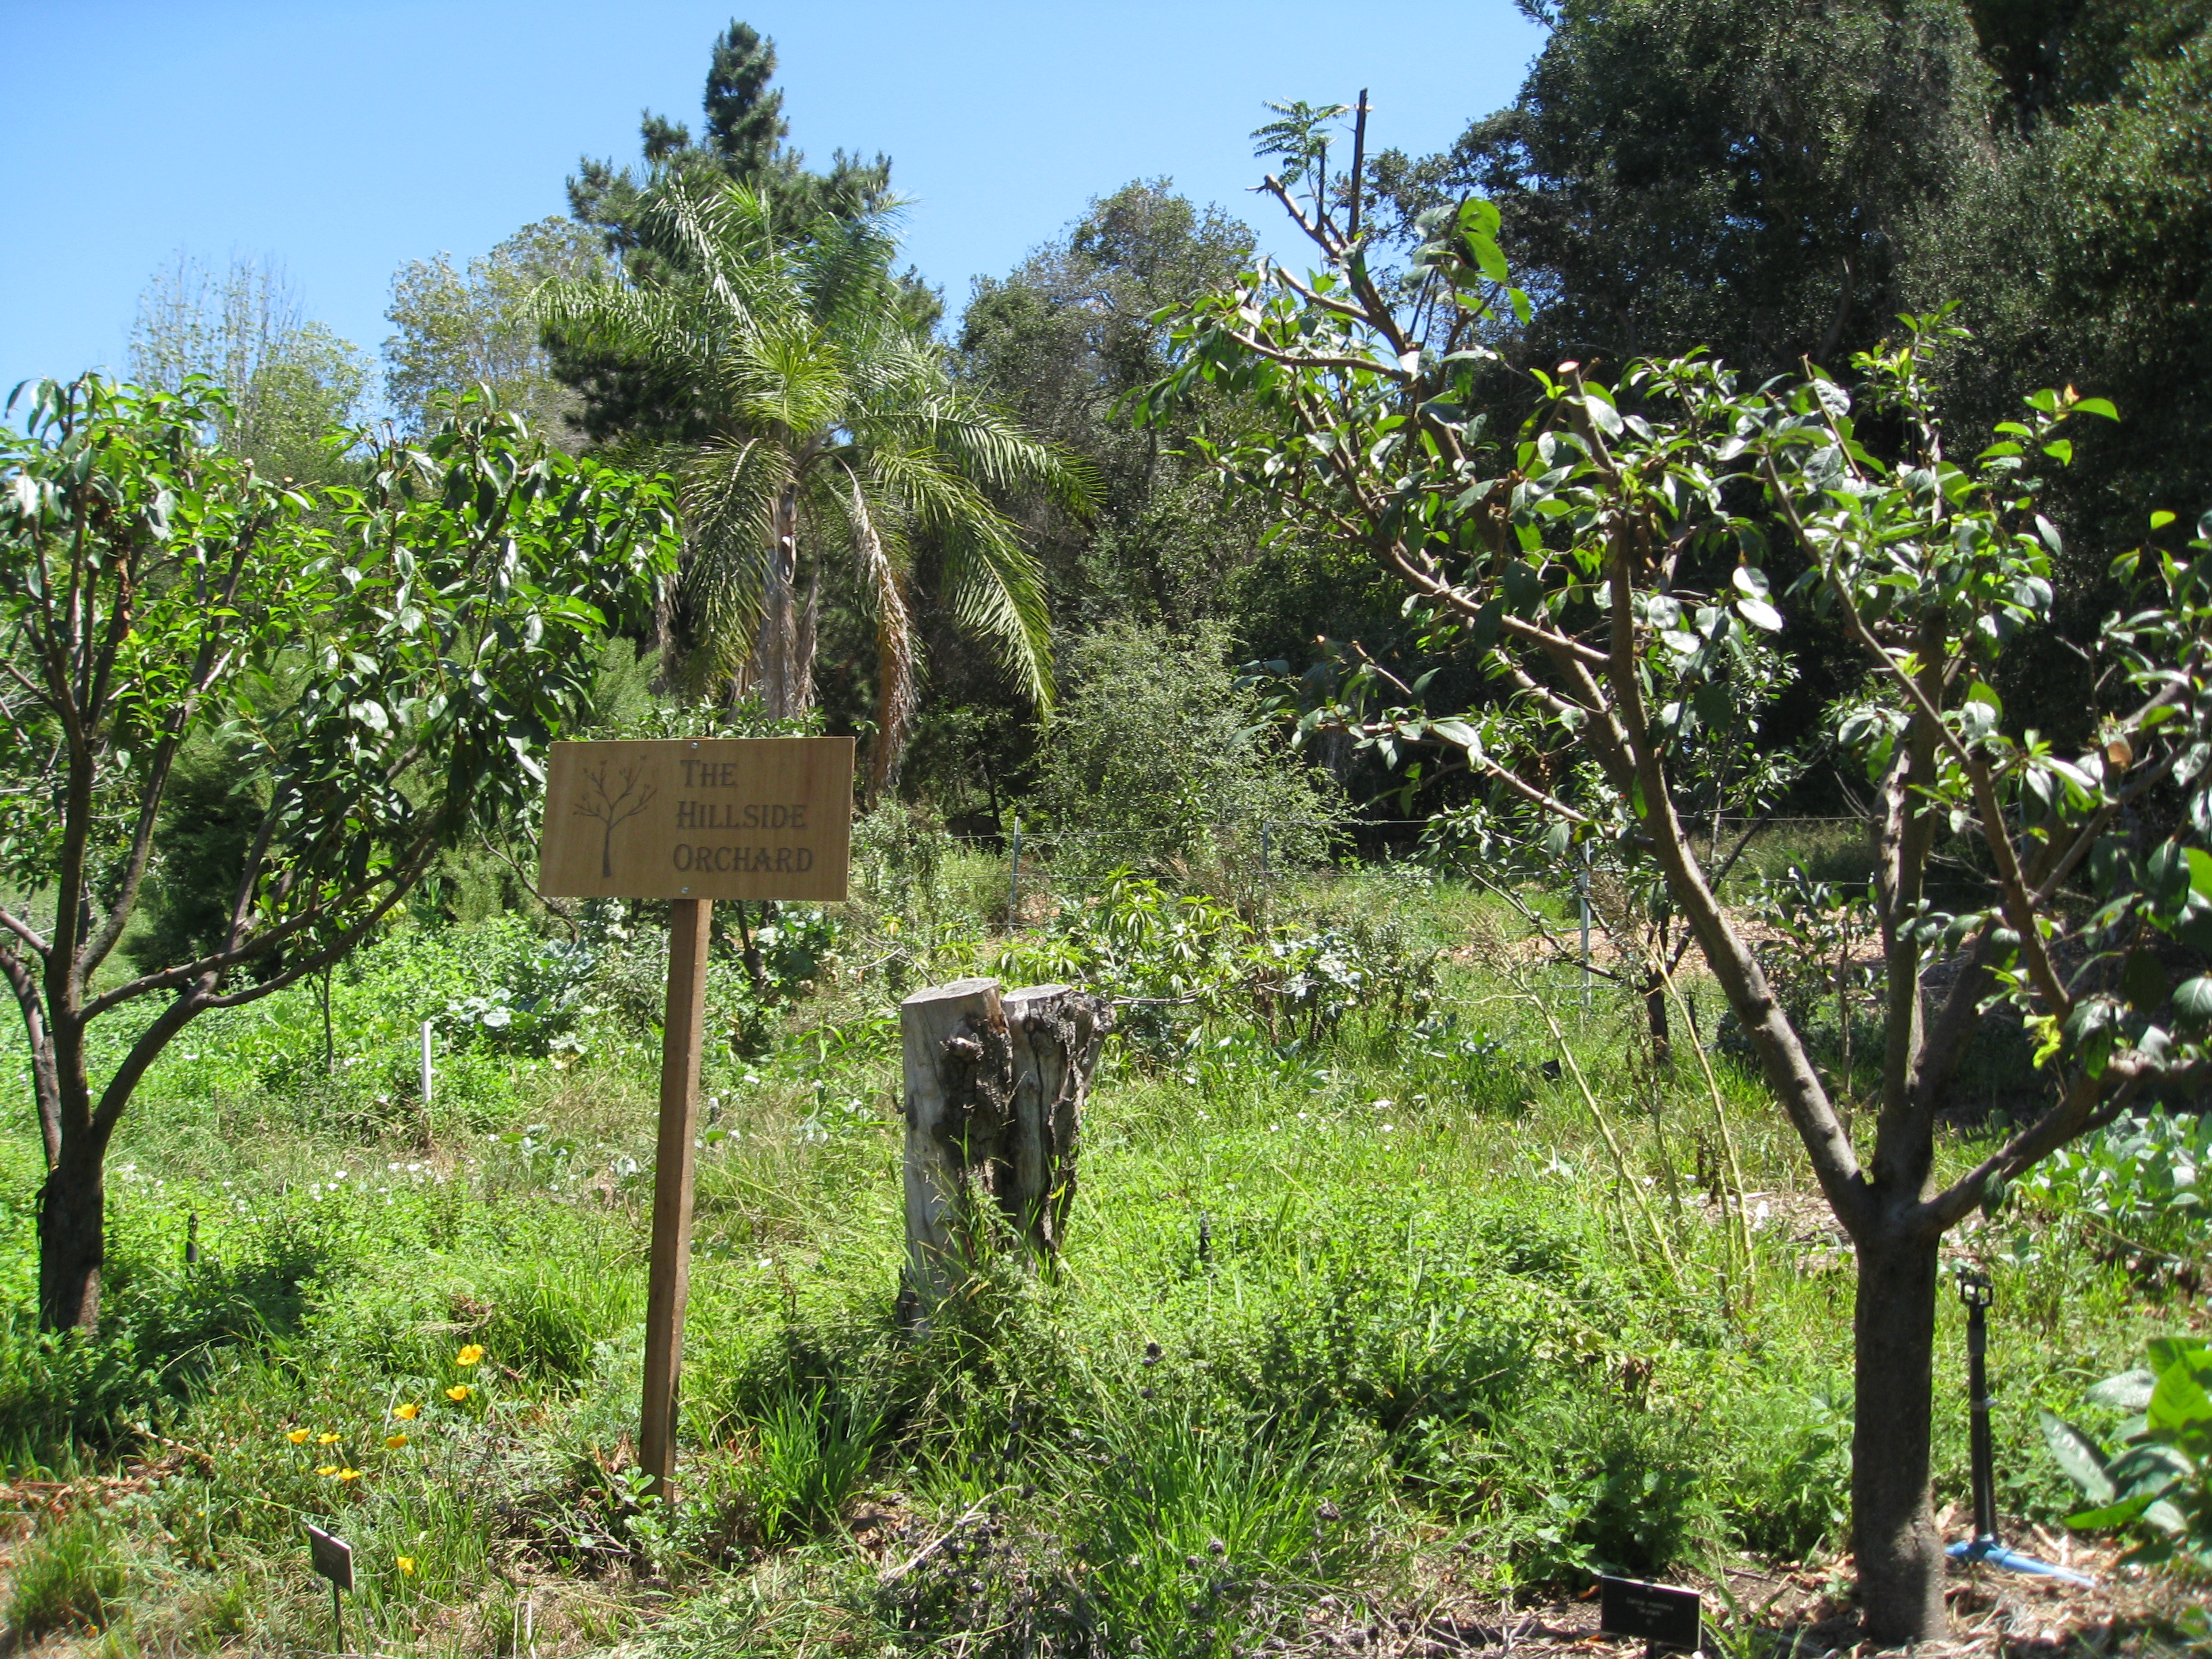 The Food Forest is stocked with fruit trees and understory plants. Still getting established, but much further along than the sticks we saw in 2009.